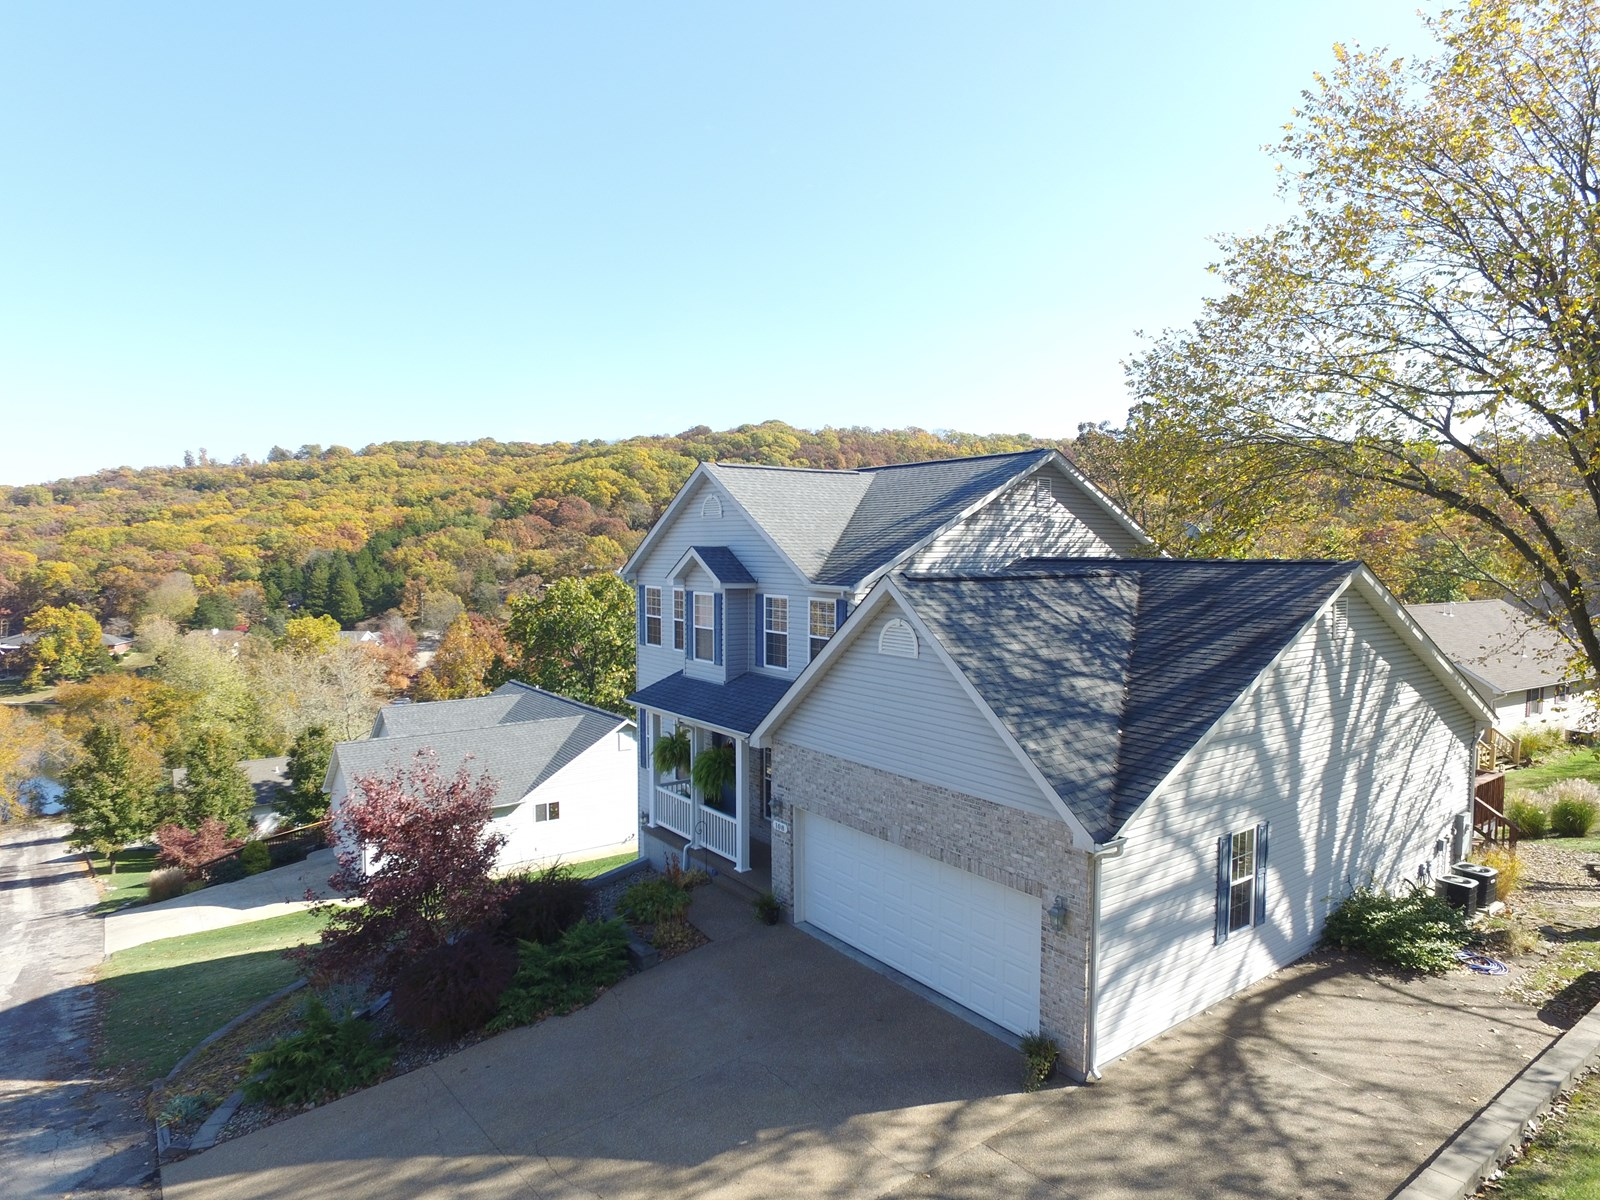 Spacious Home with Beautiful View For Sale in Hermann, MO